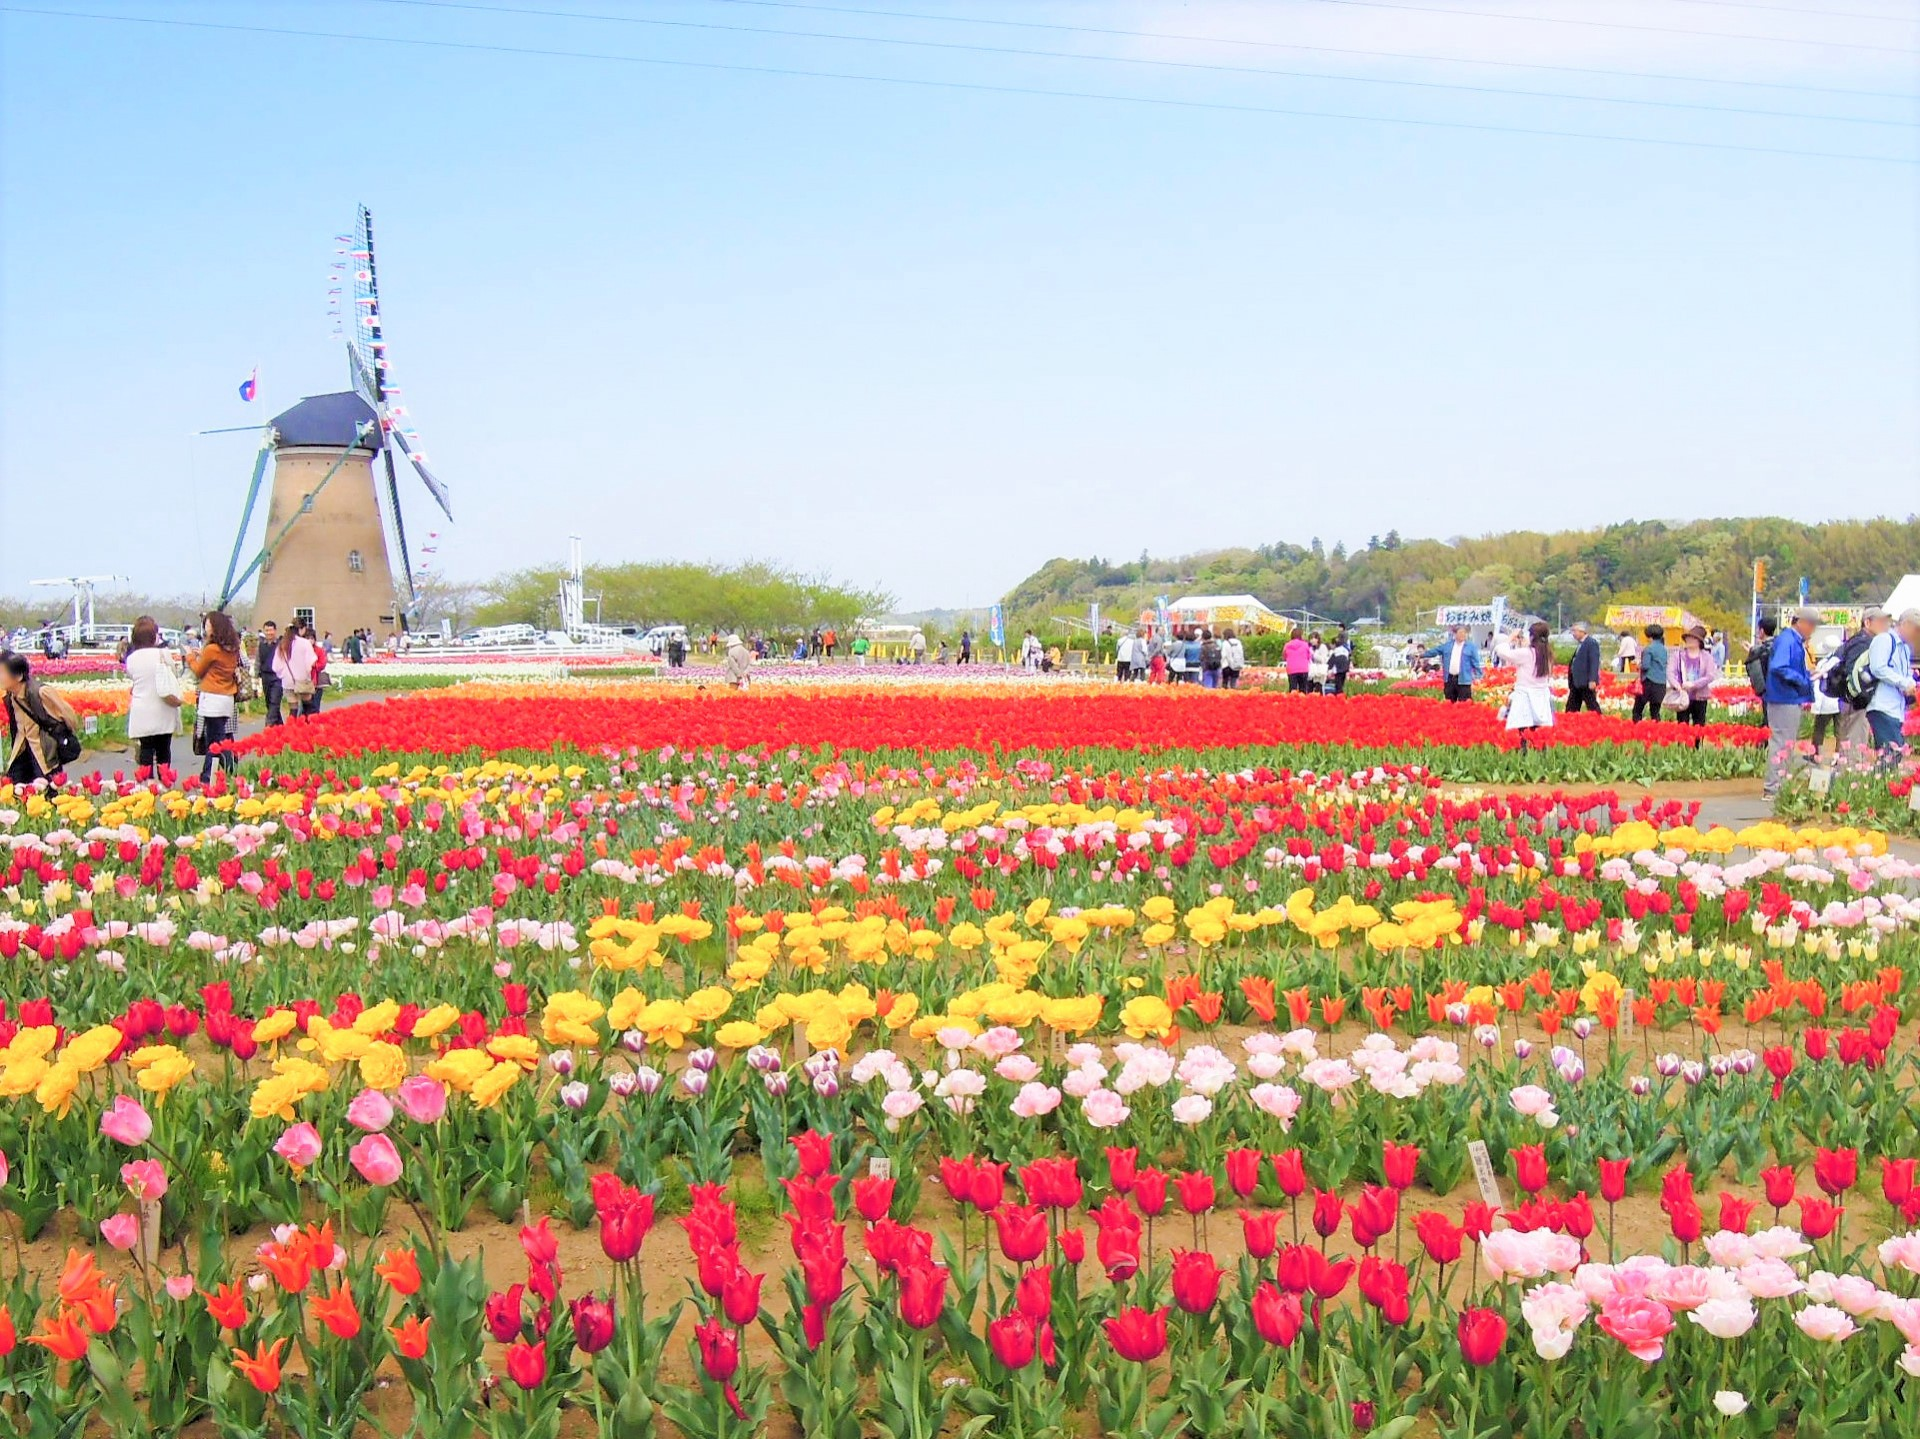 Sakura tulip festa 2018 japan travel guide jw web magazine besides cherry blossoms there are many more beautiful flowers flourish during spring in japan sakura tulip festa is the biggest tulip festival around mightylinksfo